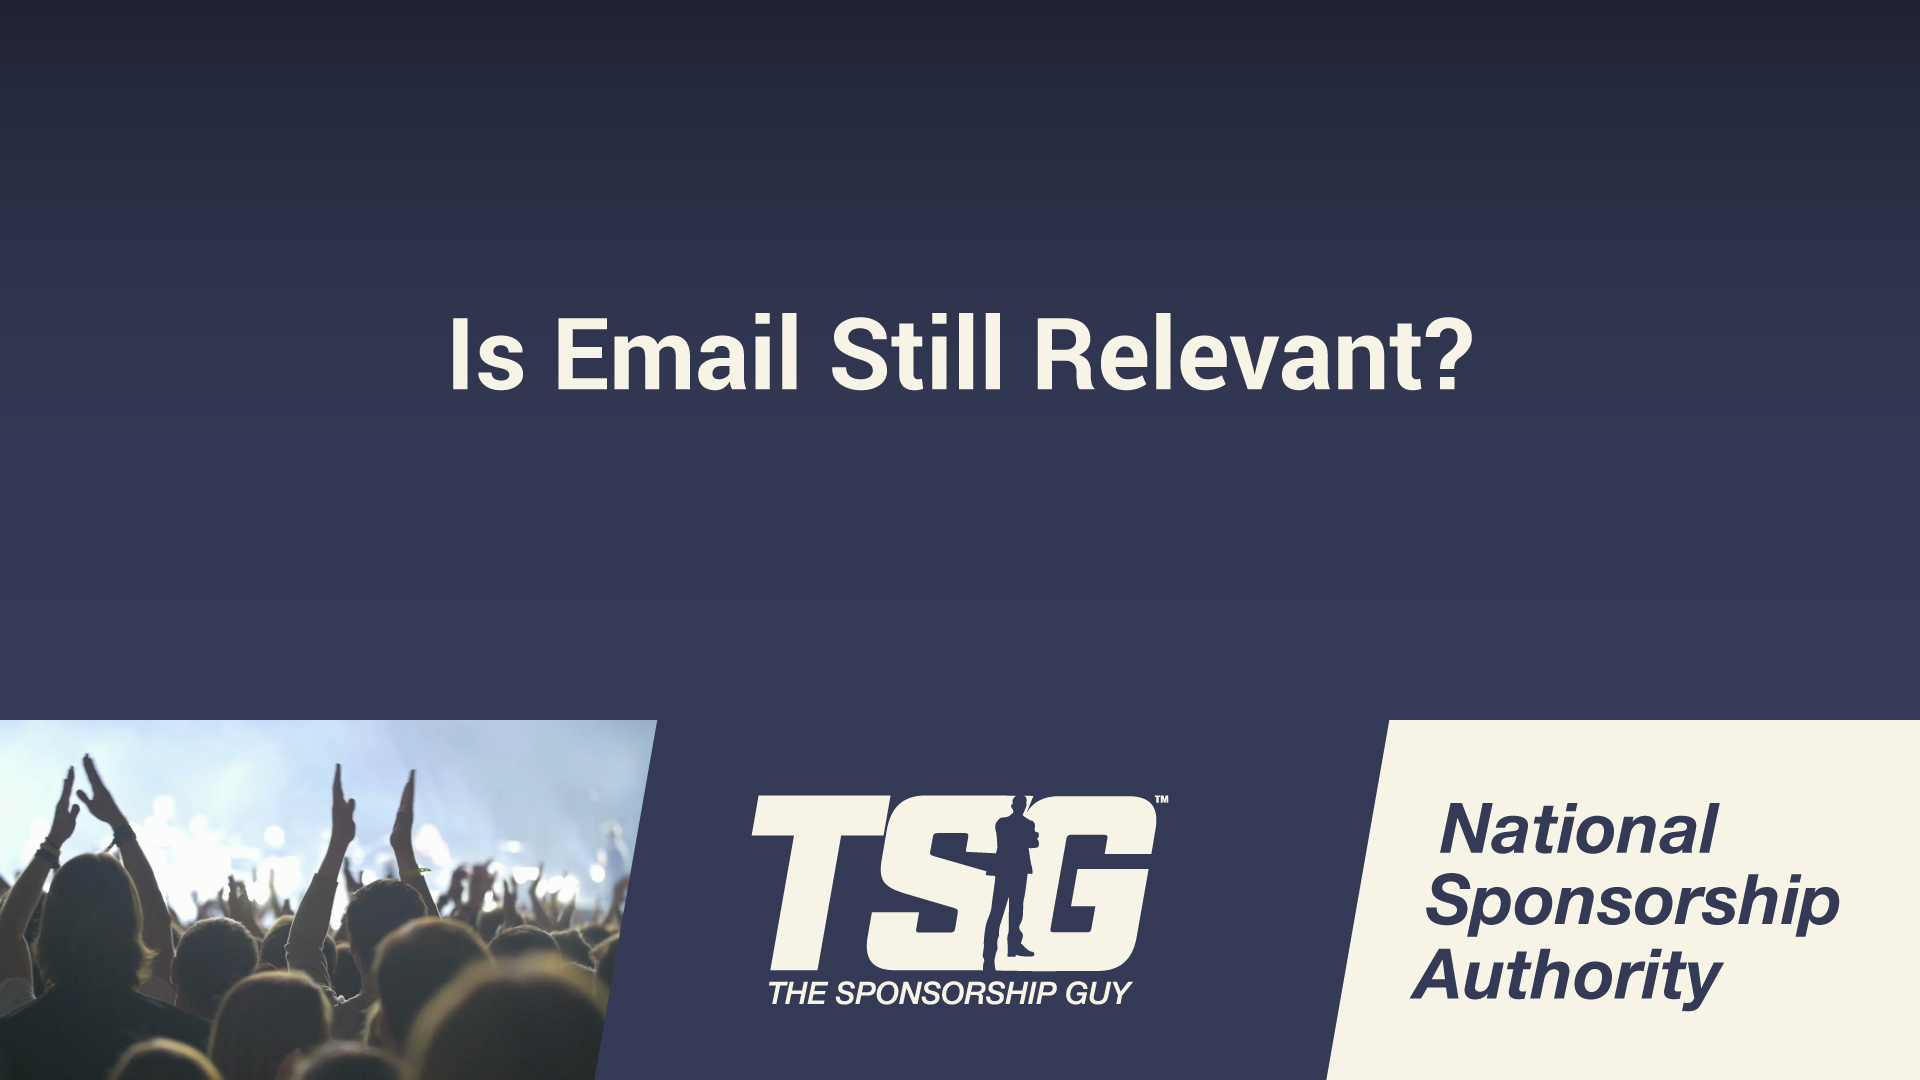 Is Email Still Relevant?